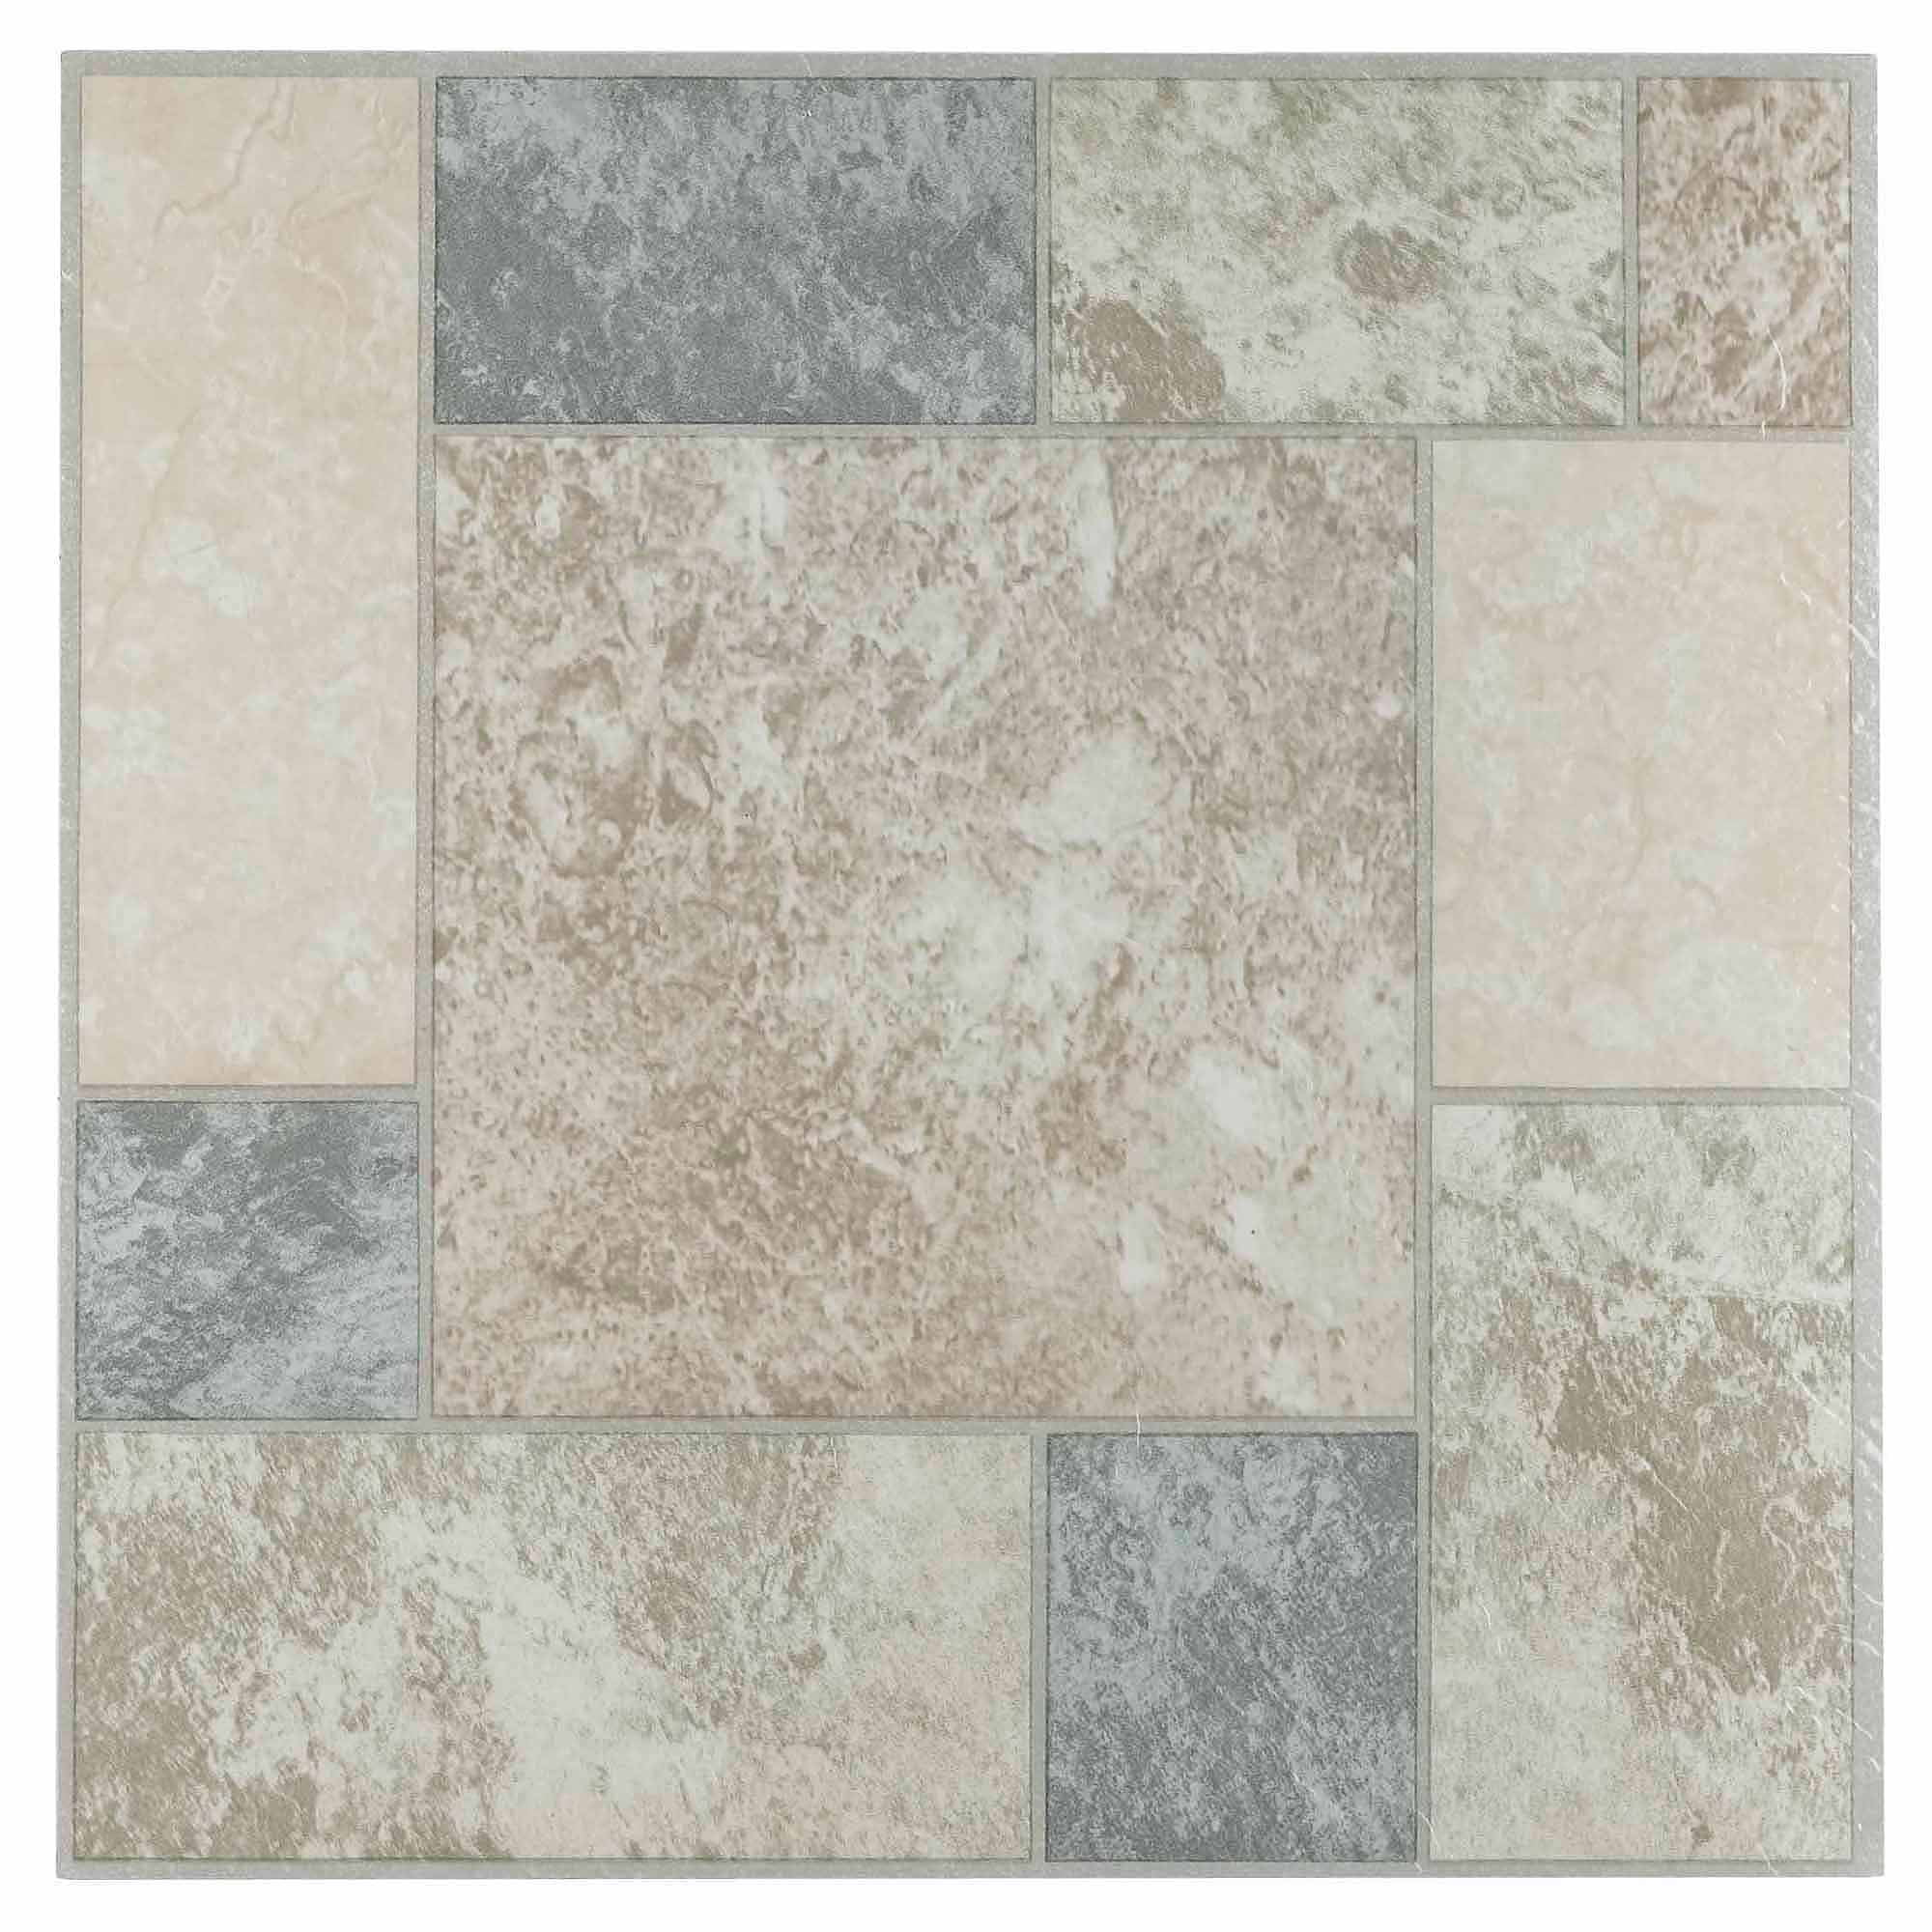 Nexus marble blocks 12x12self adhesive vinyl floor tile 20 tiles nexus marble blocks 12x12self adhesive vinyl floor tile 20 tiles20 sqft walmart doublecrazyfo Choice Image